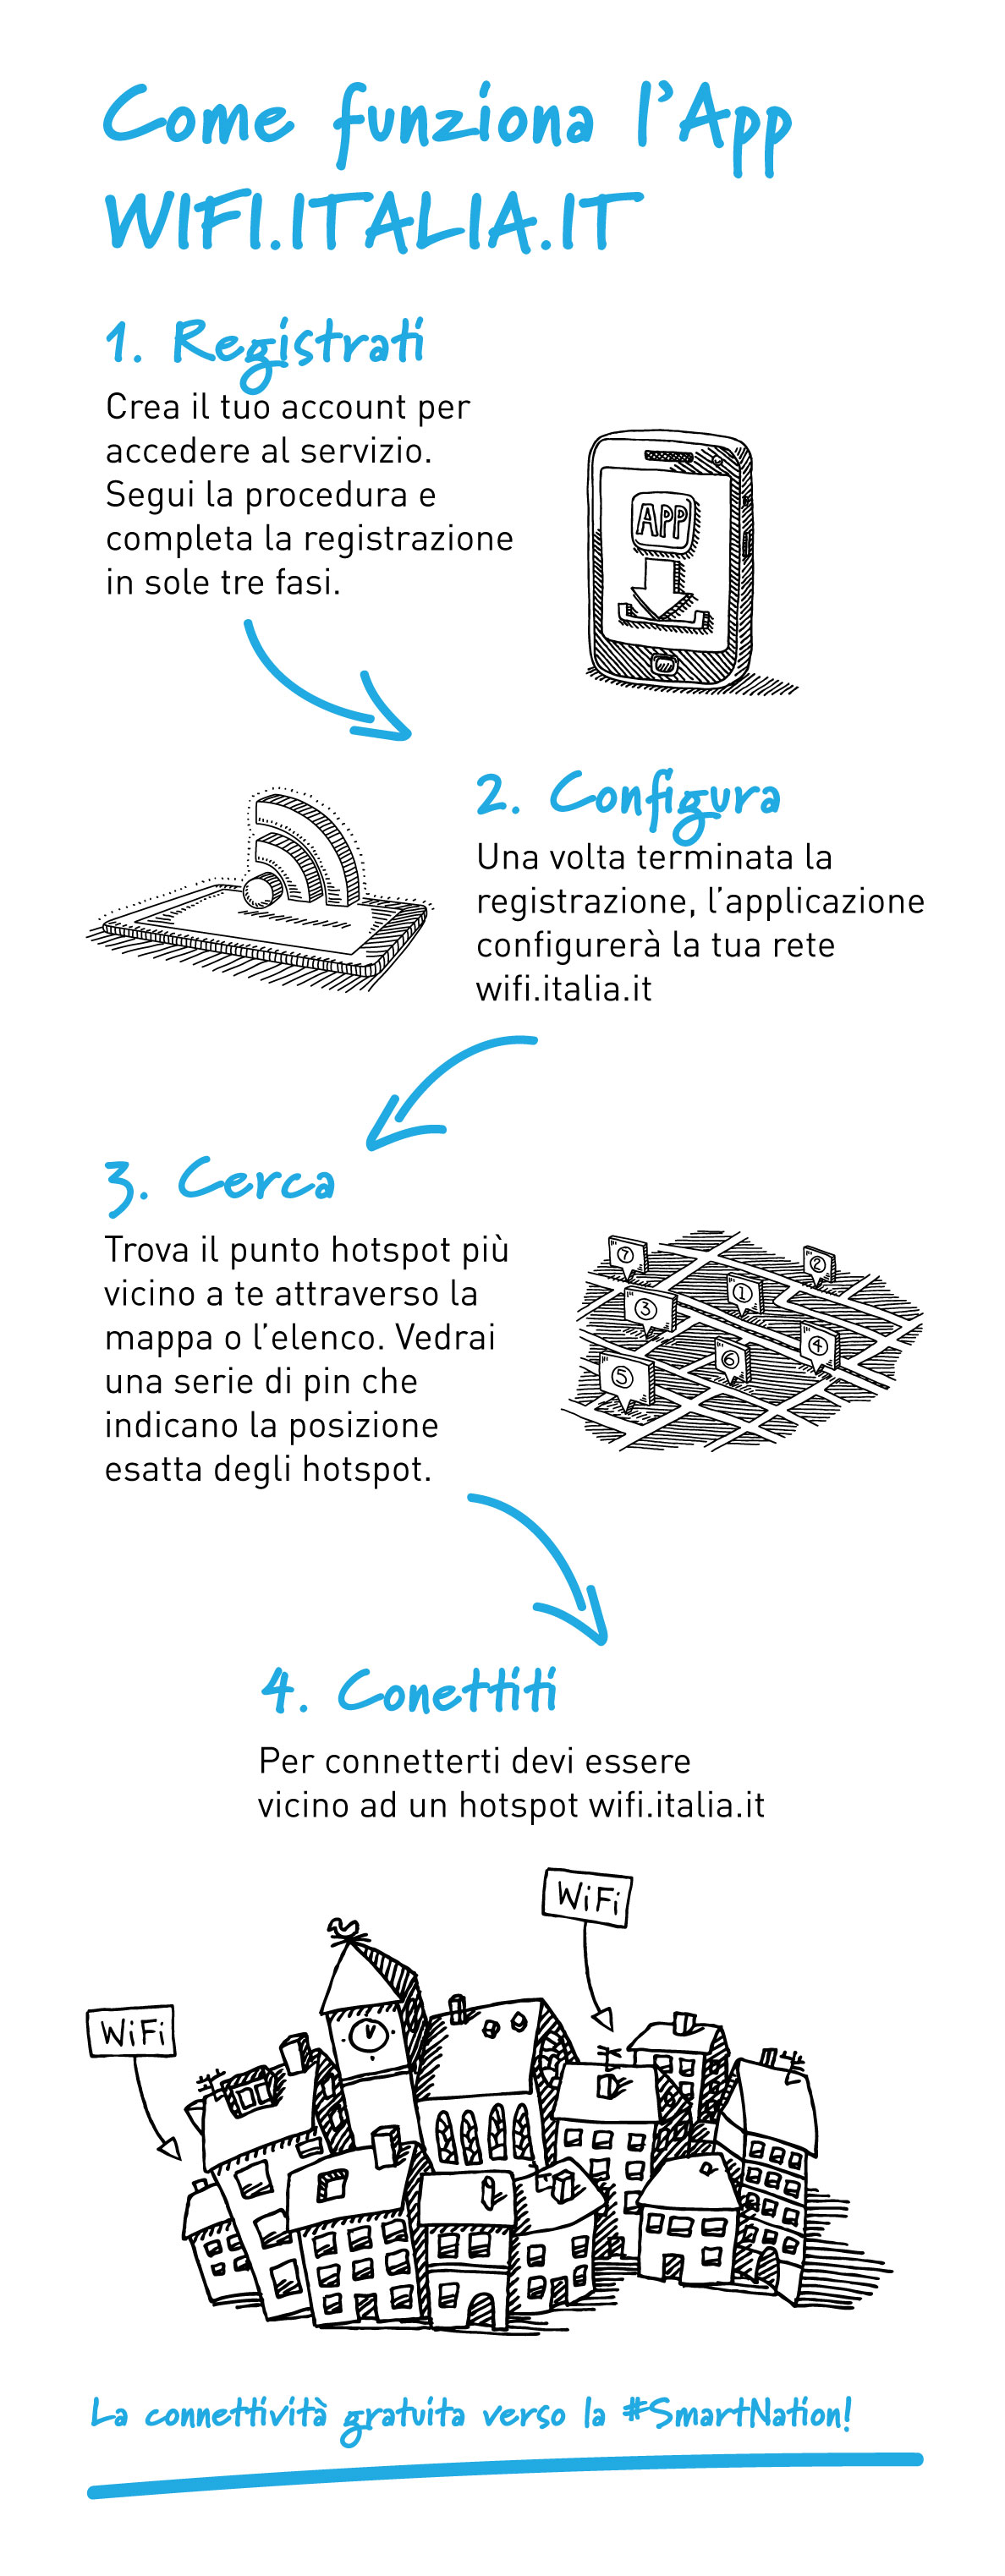 Come funziona l'App WIFI.ITALIA.IT